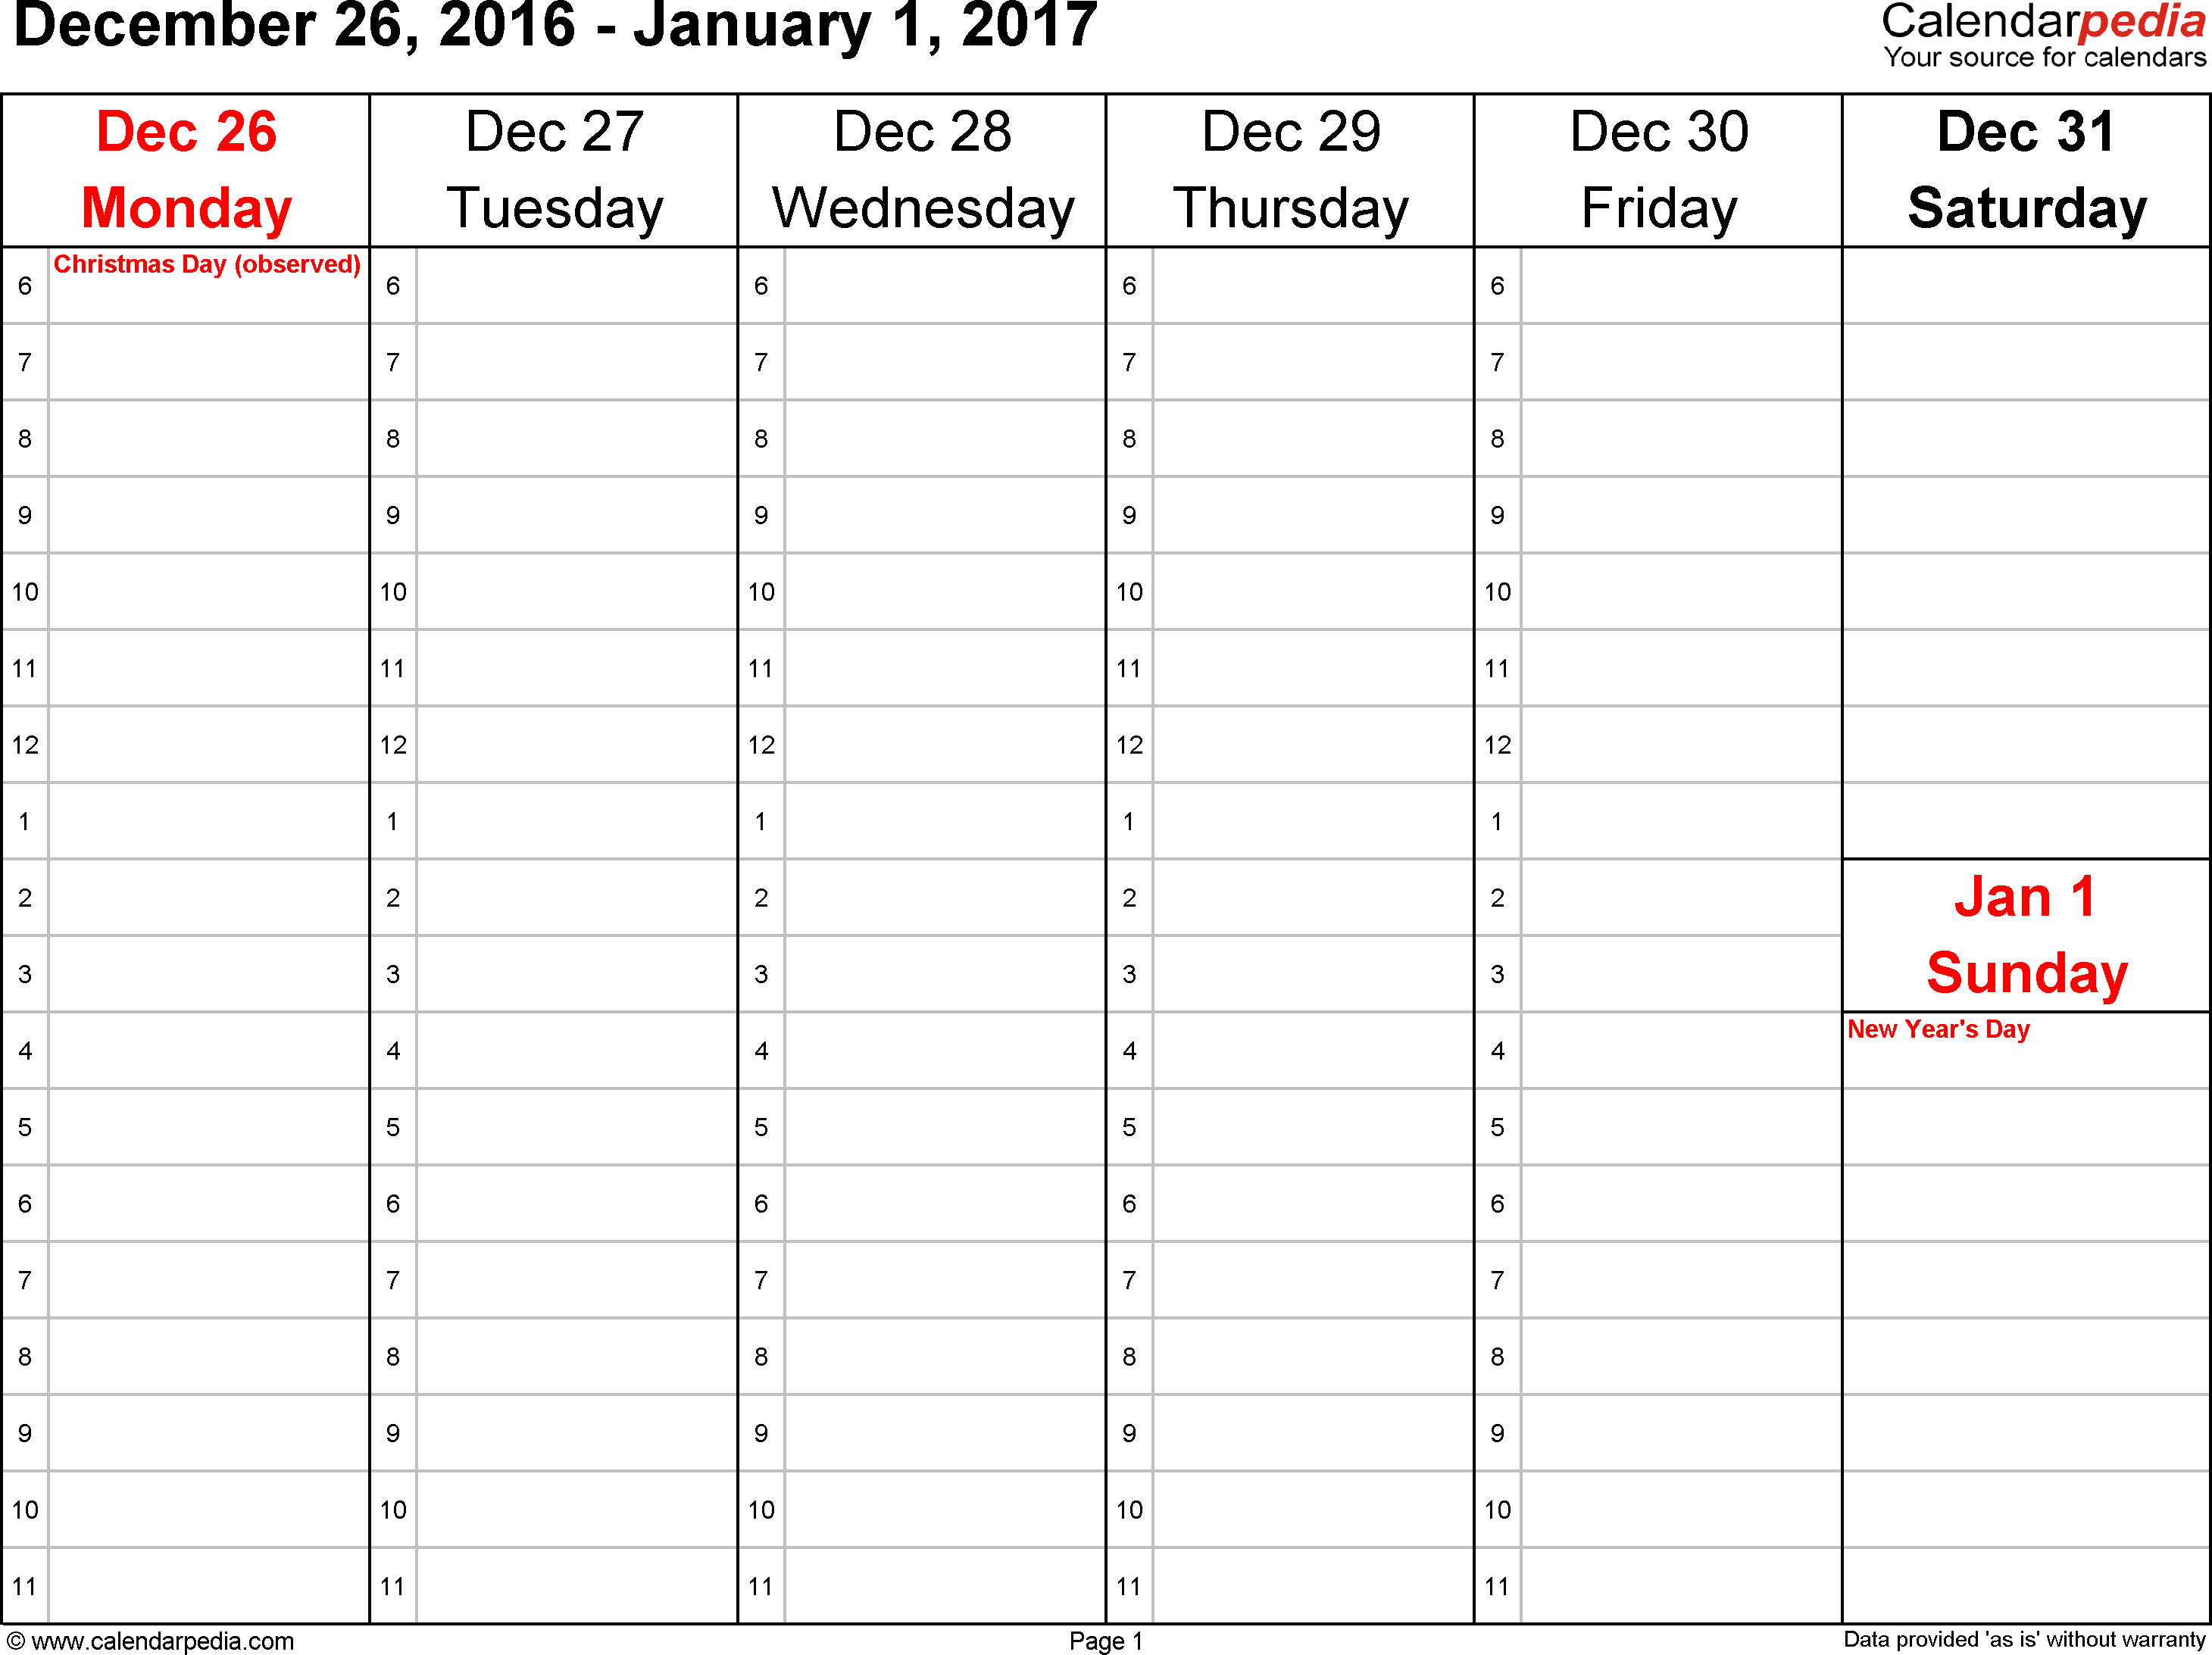 Weekly calendar 2017: template for Excel version 4, landscape, 53 pages, Saturday & Sunday share one column